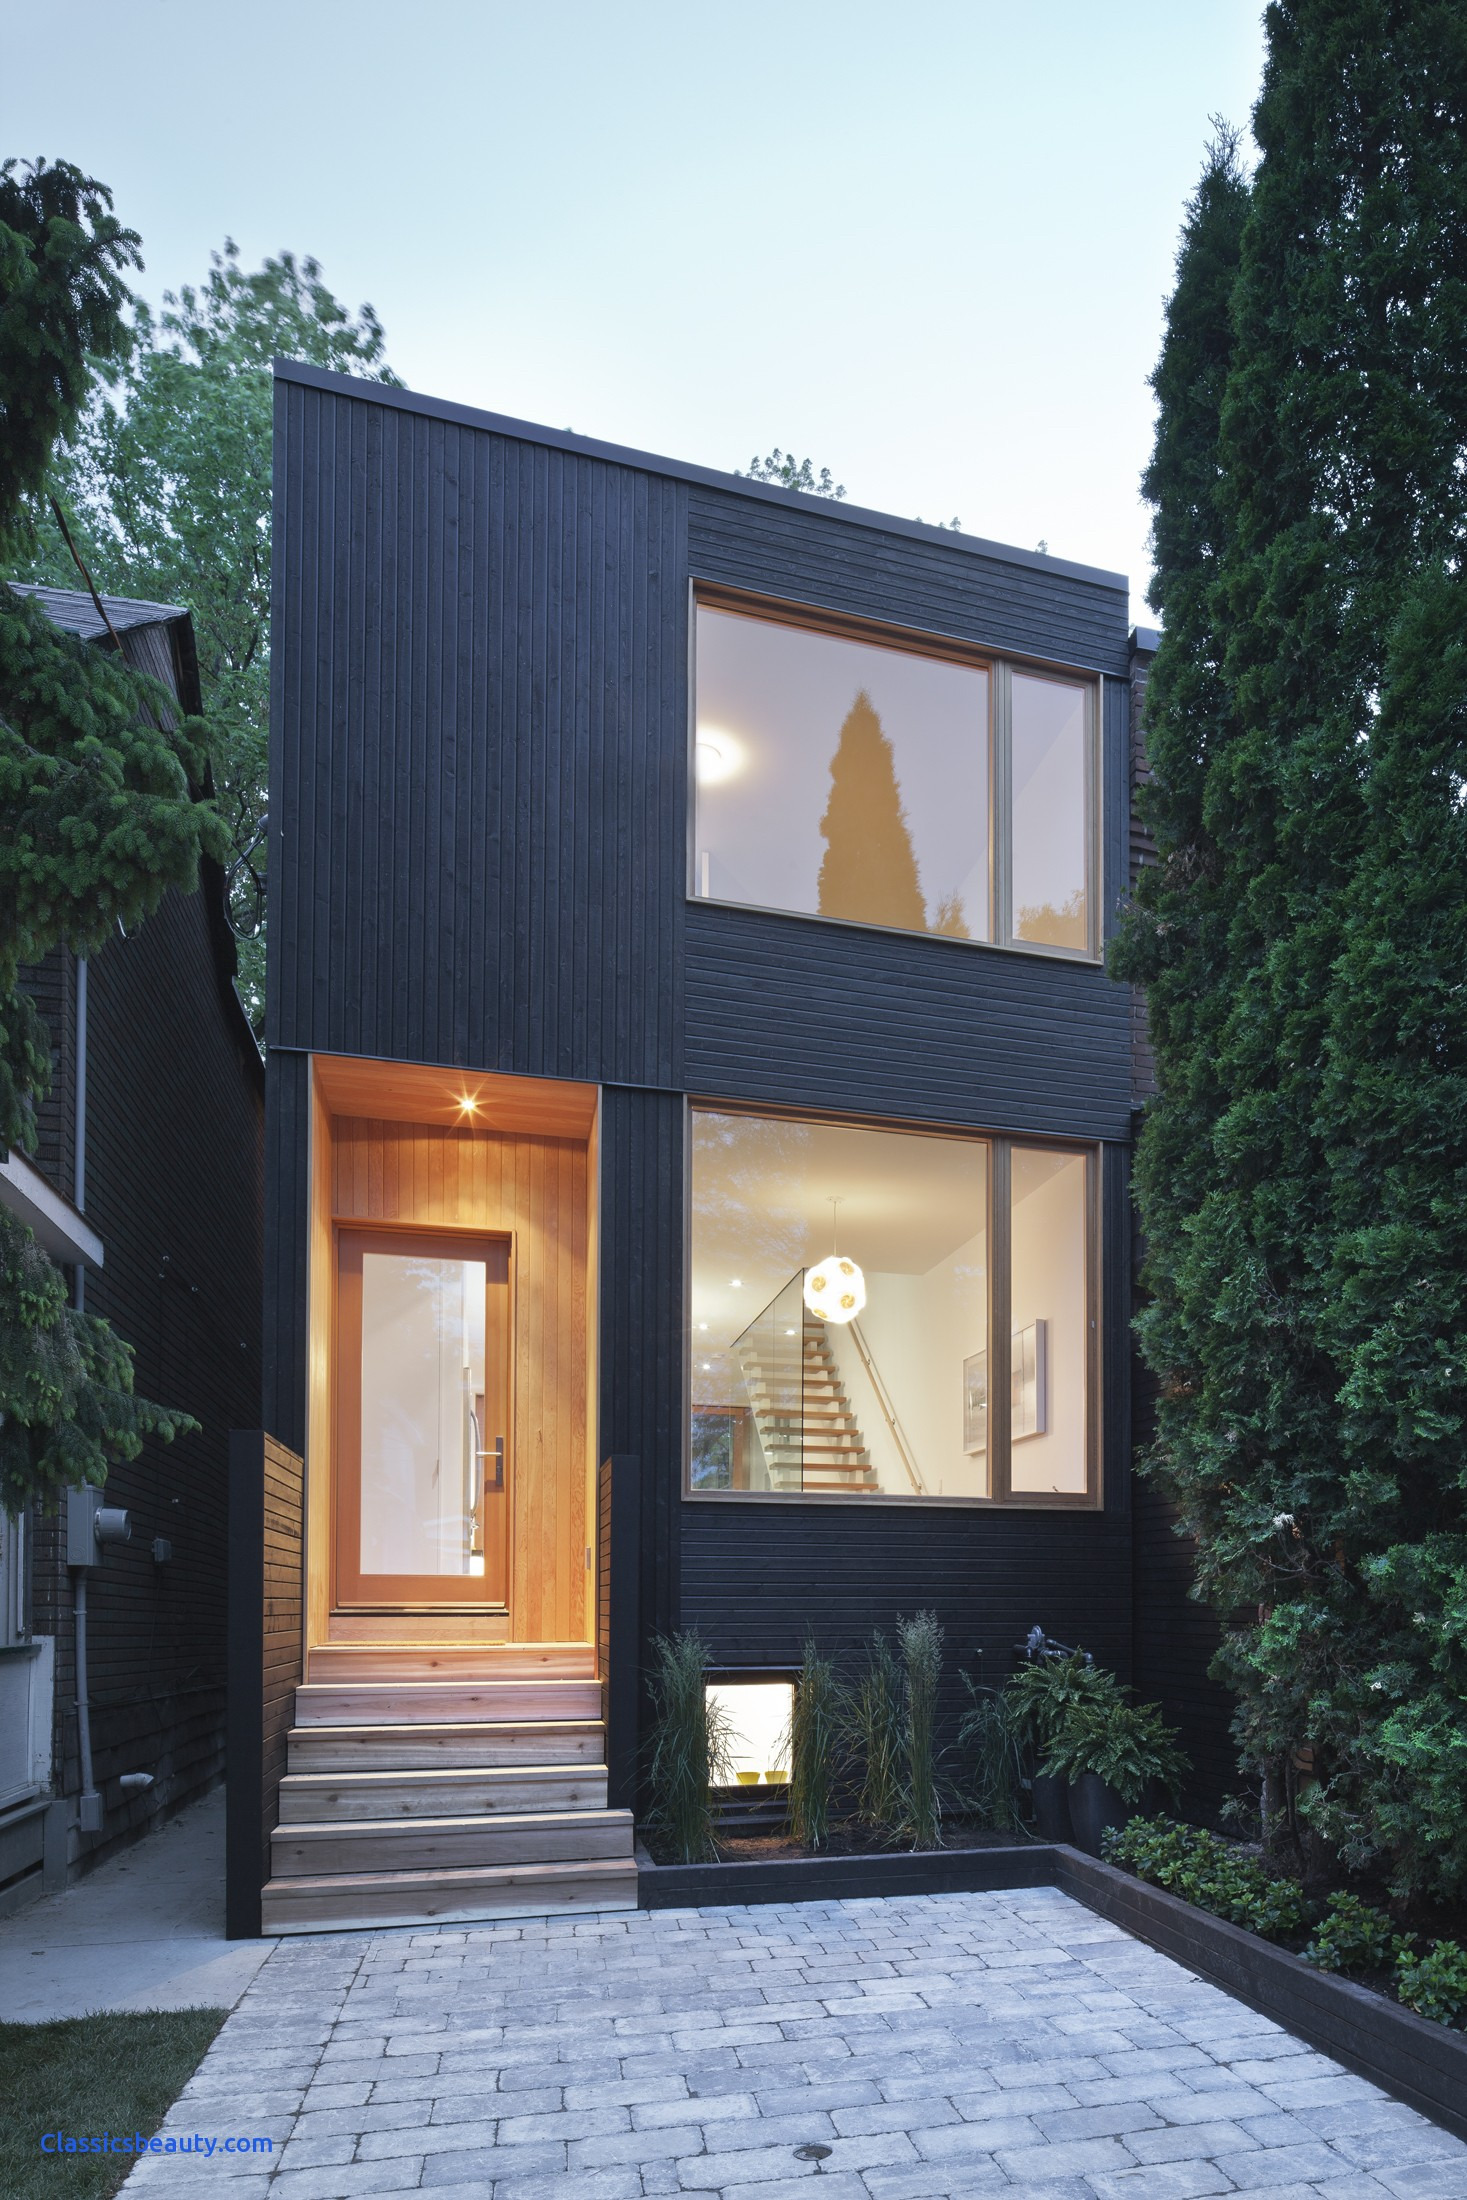 Affordable Home Building Ideas Unique Small Affordable Homes Elegant top Modular Inexpensive